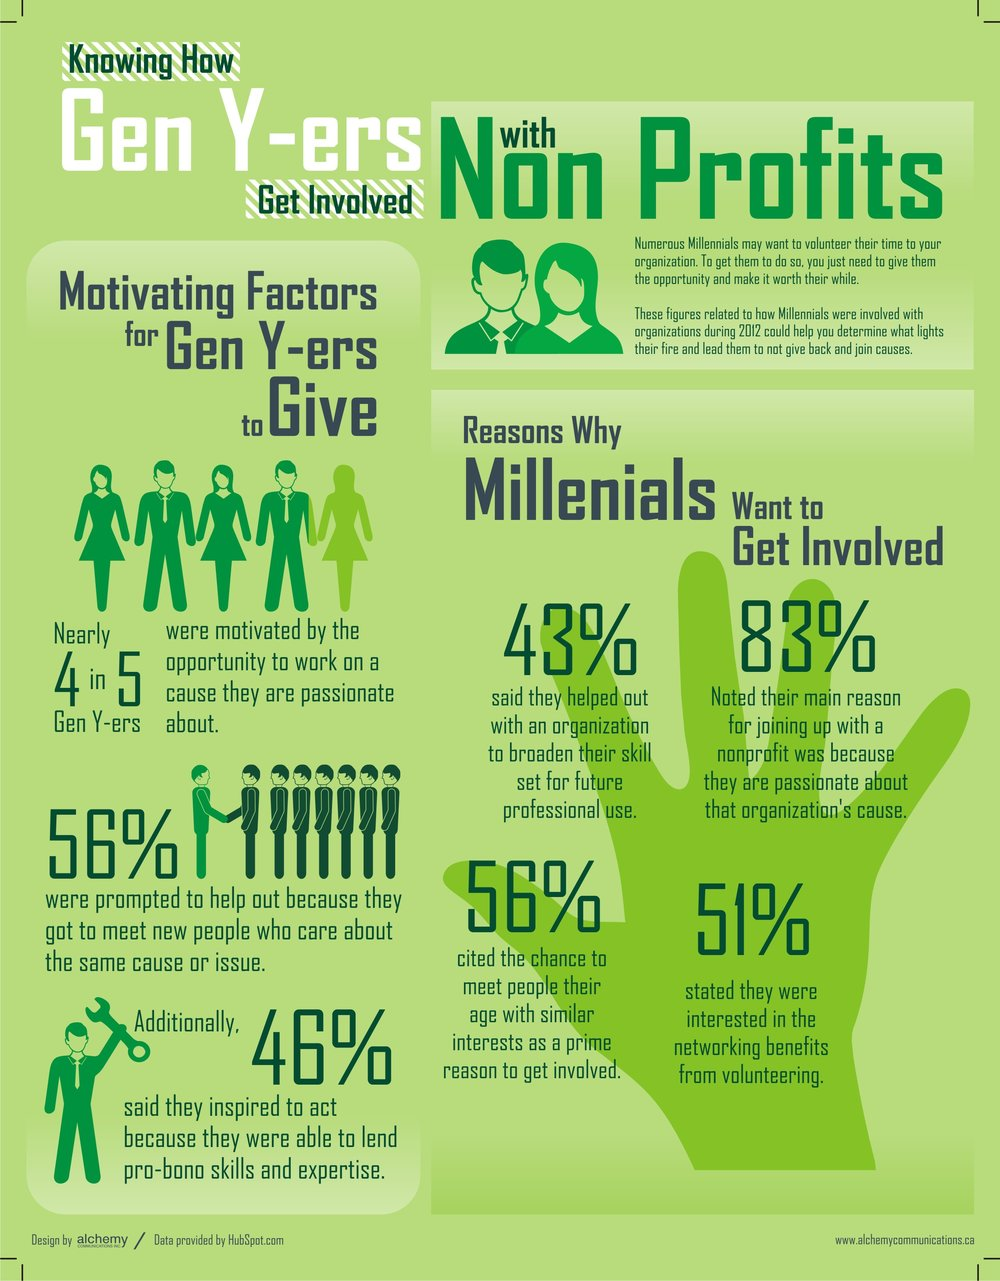 How Gen Y gets involved witn NonProfits